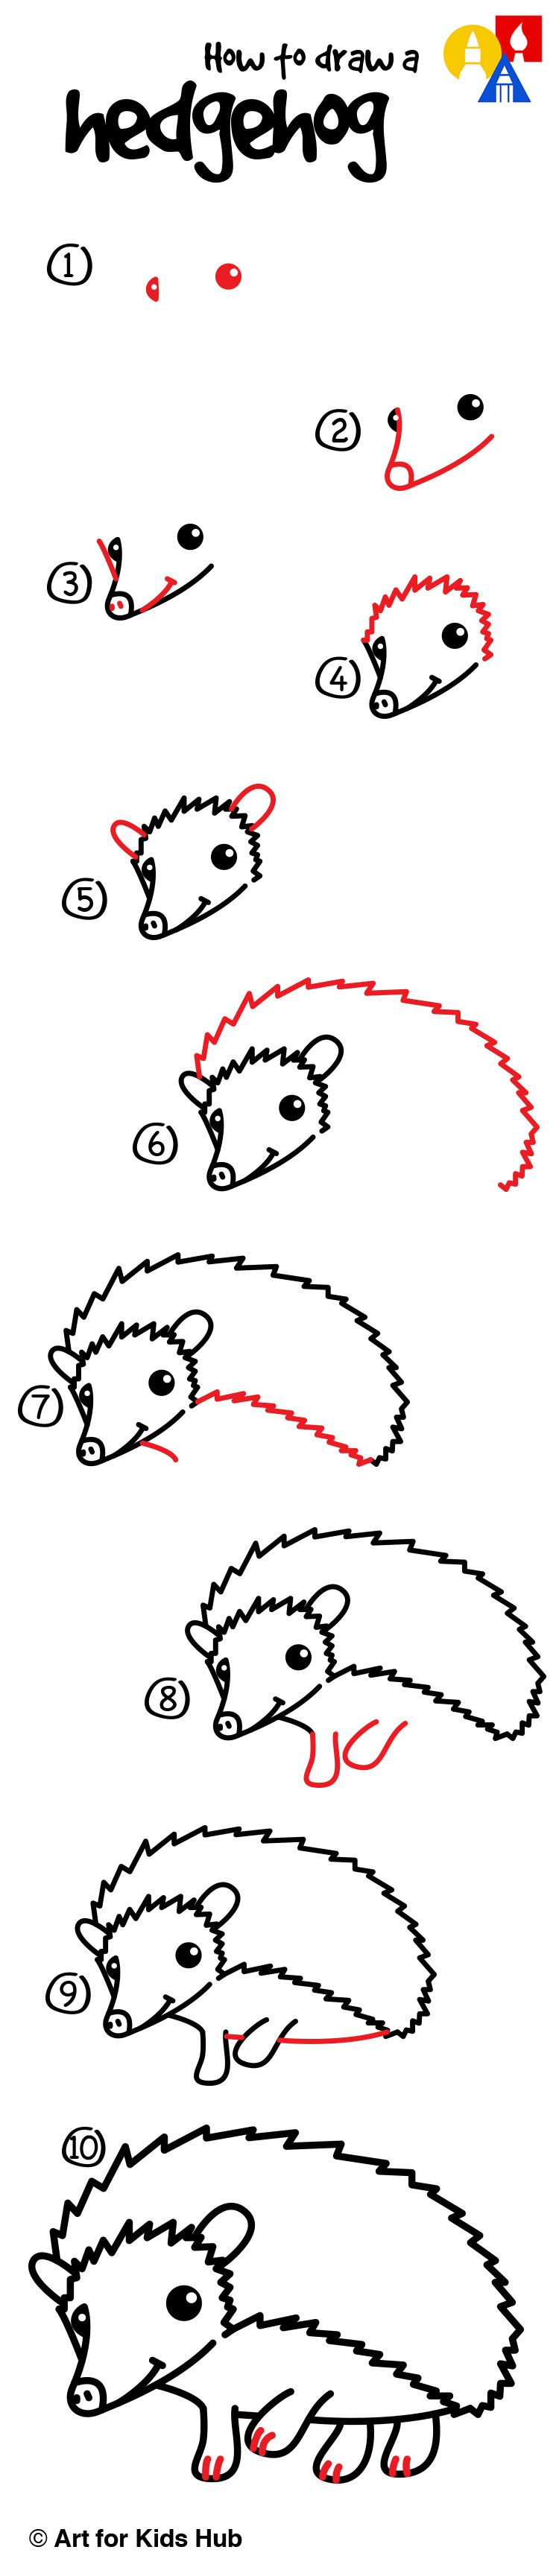 How To Draw A Hedgehog  Art For Kids Hub